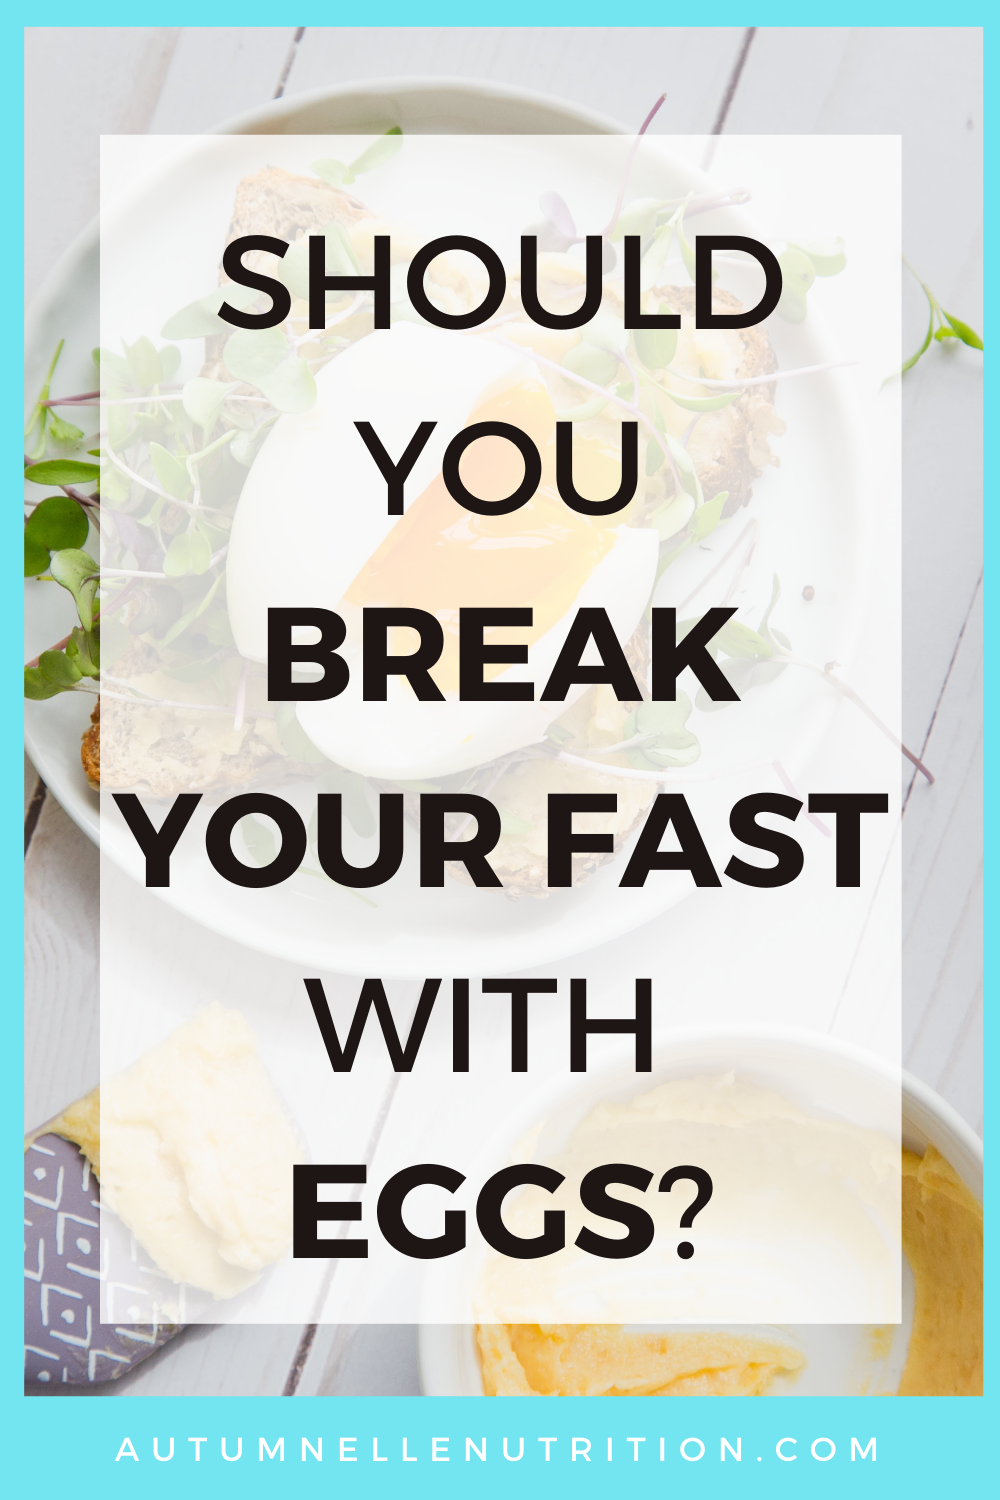 Breaking a fast with eggs